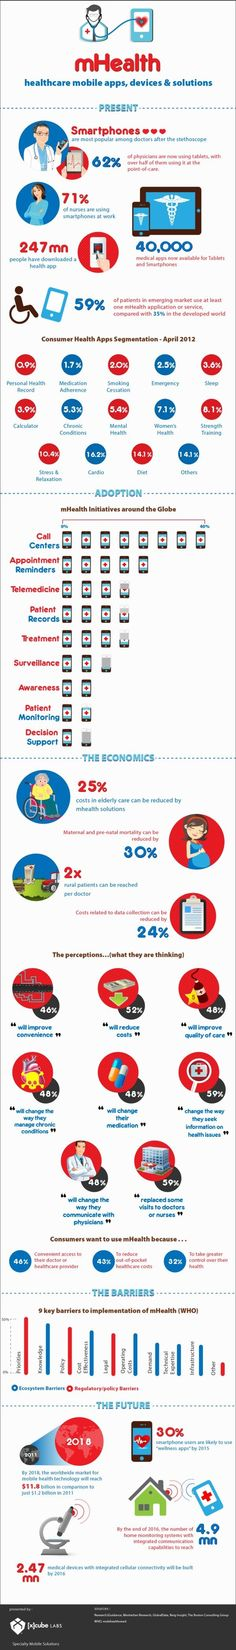 MHealth. Healthcare mobile apps, devices and solutions. #hcsm #epharma #mhealth #infographic